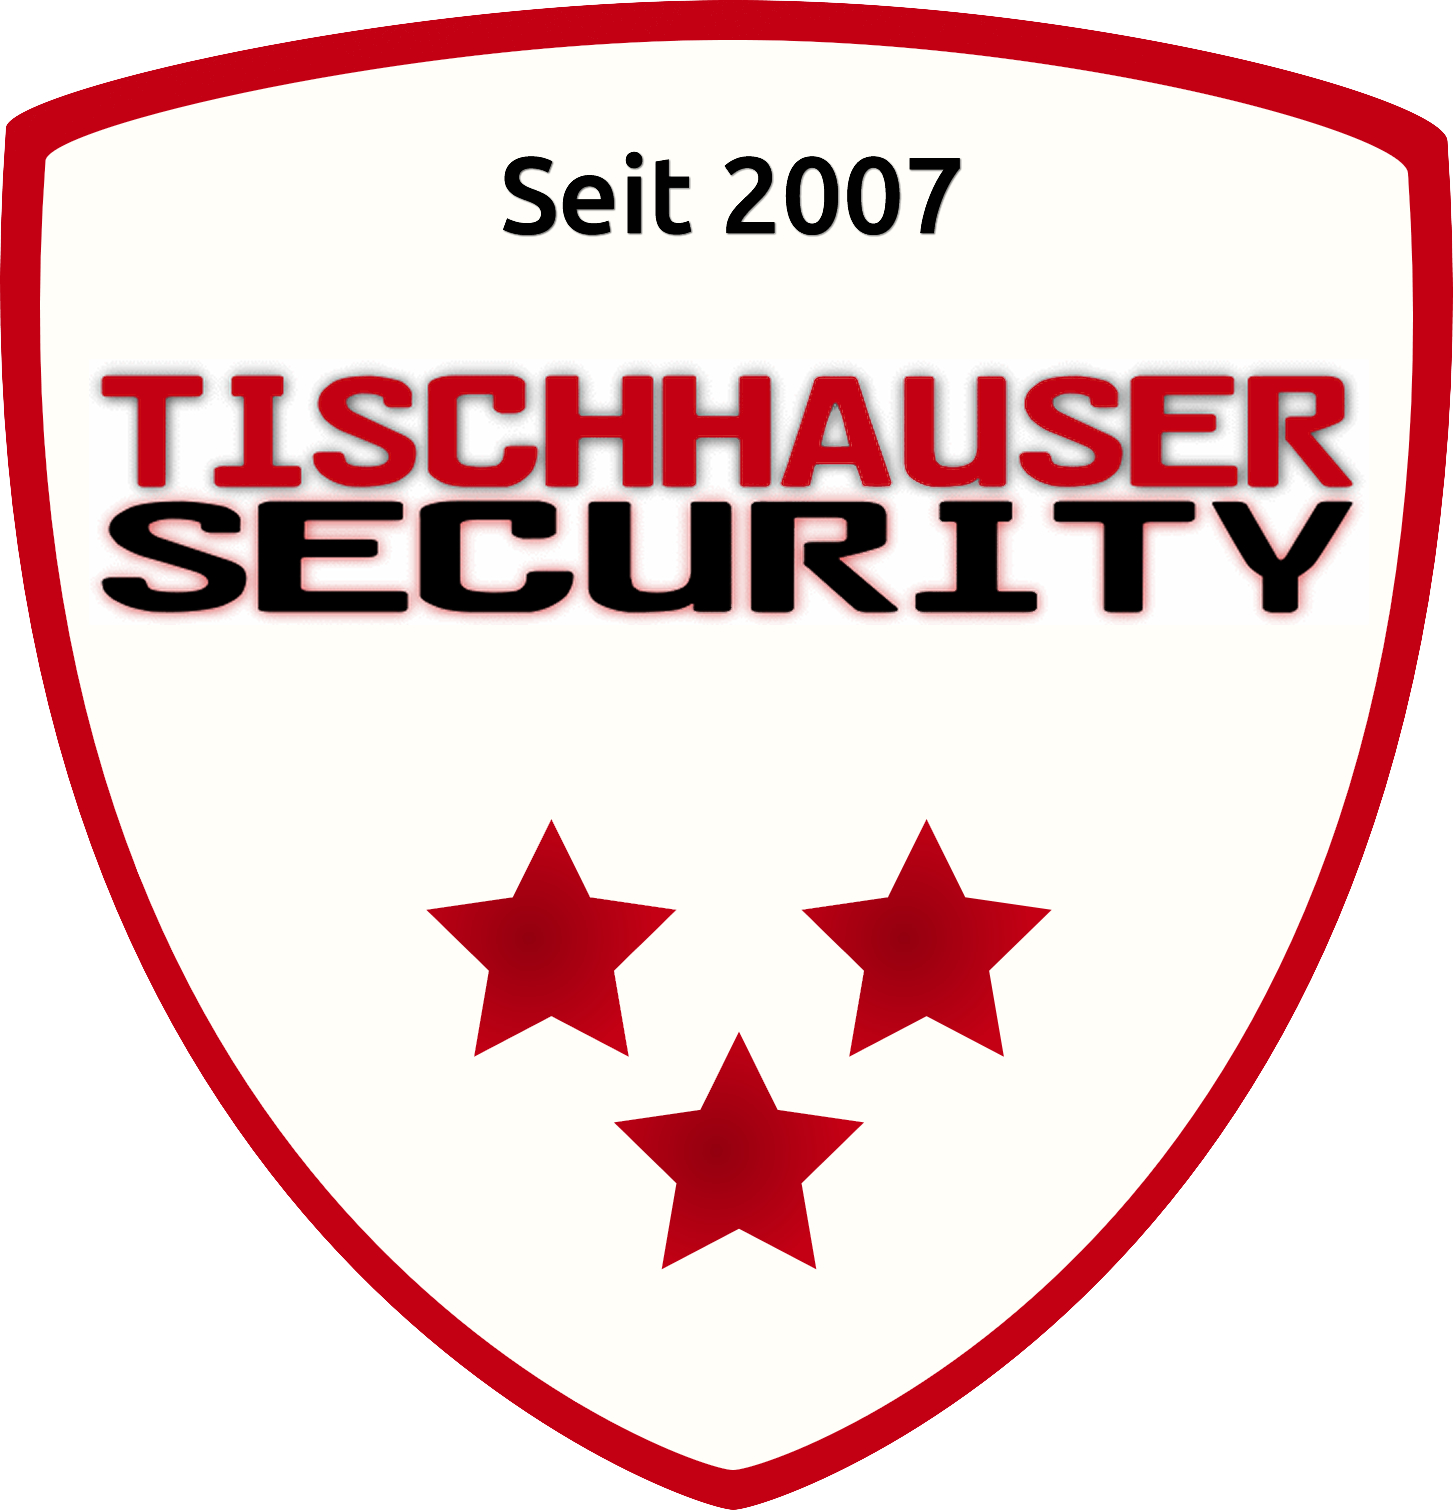 Security Tischhauser _ high quality_TRANSPARENT.png